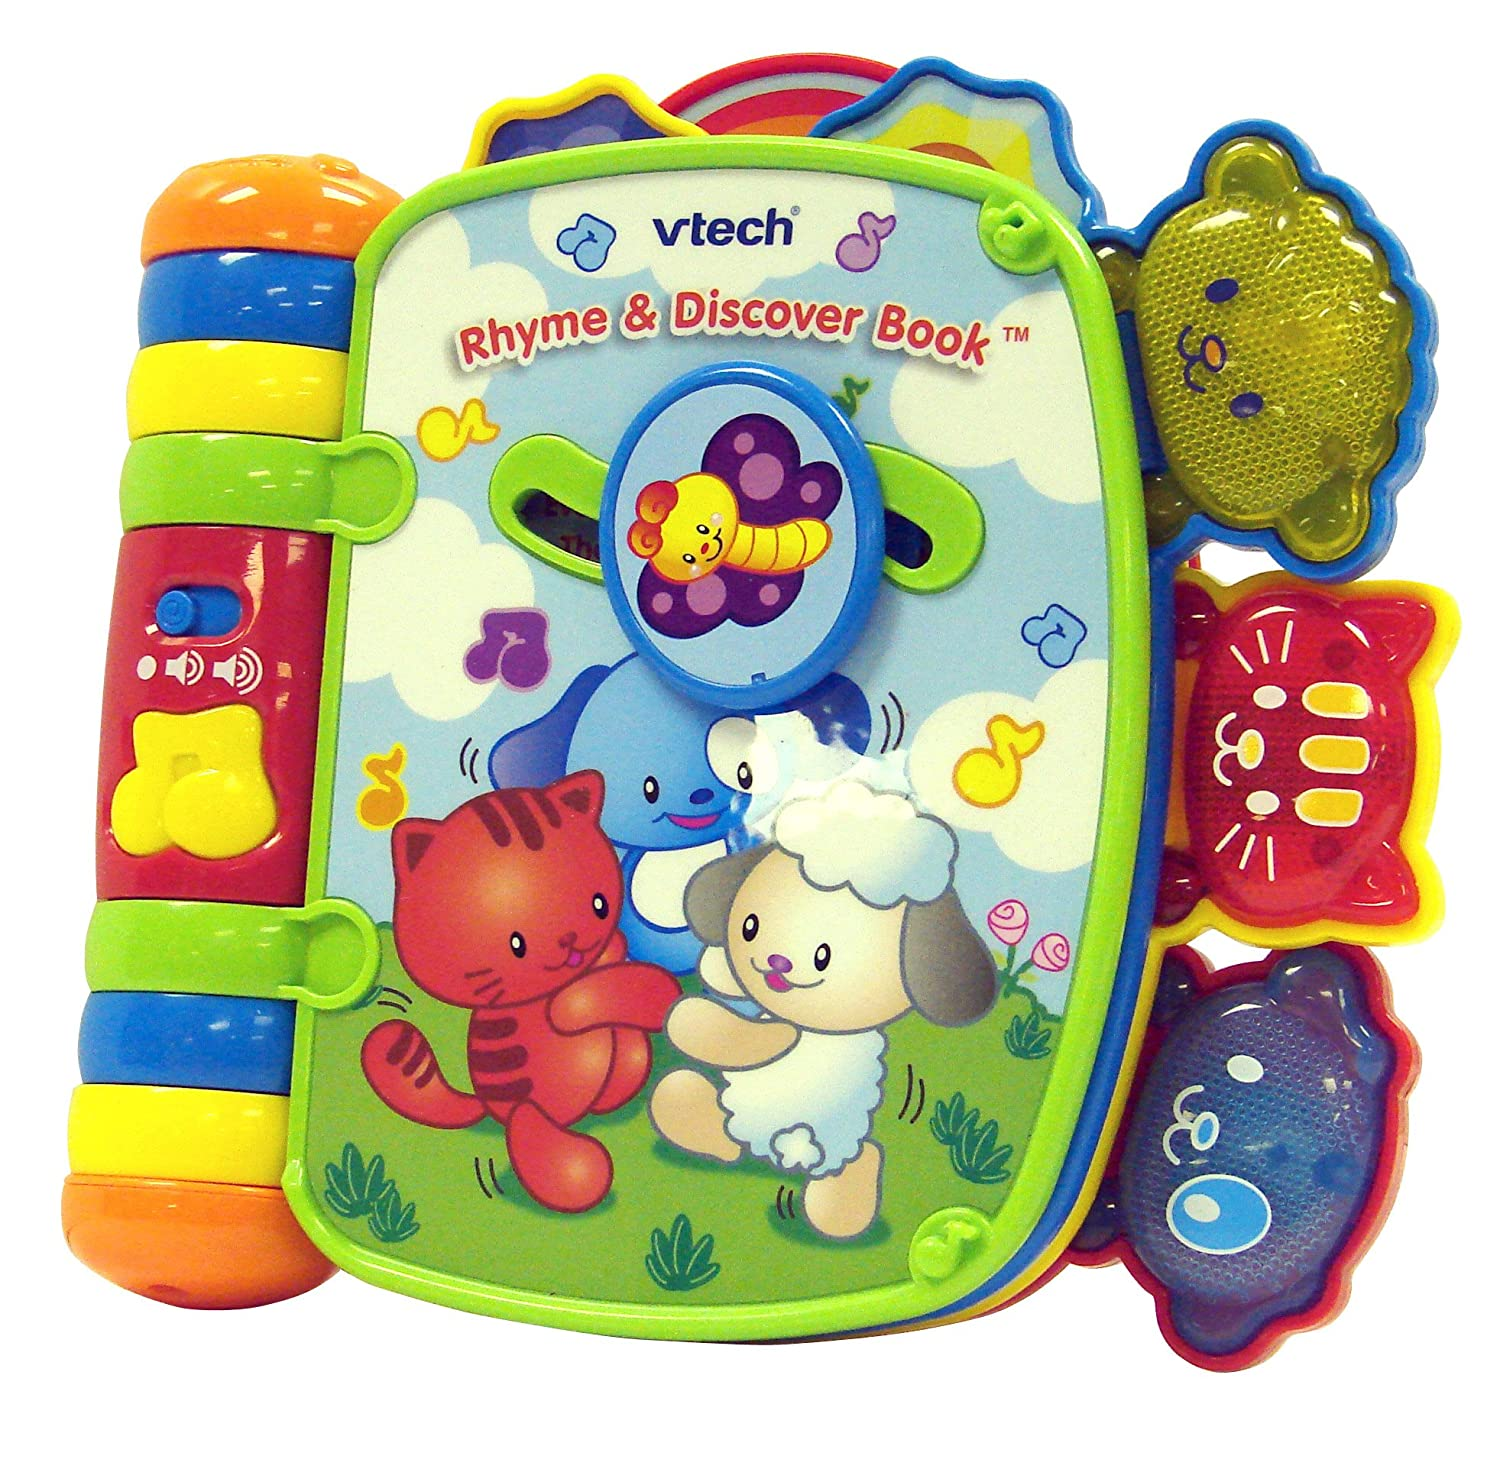 Amazon VTech Rhyme and Discover Book Toys & Games